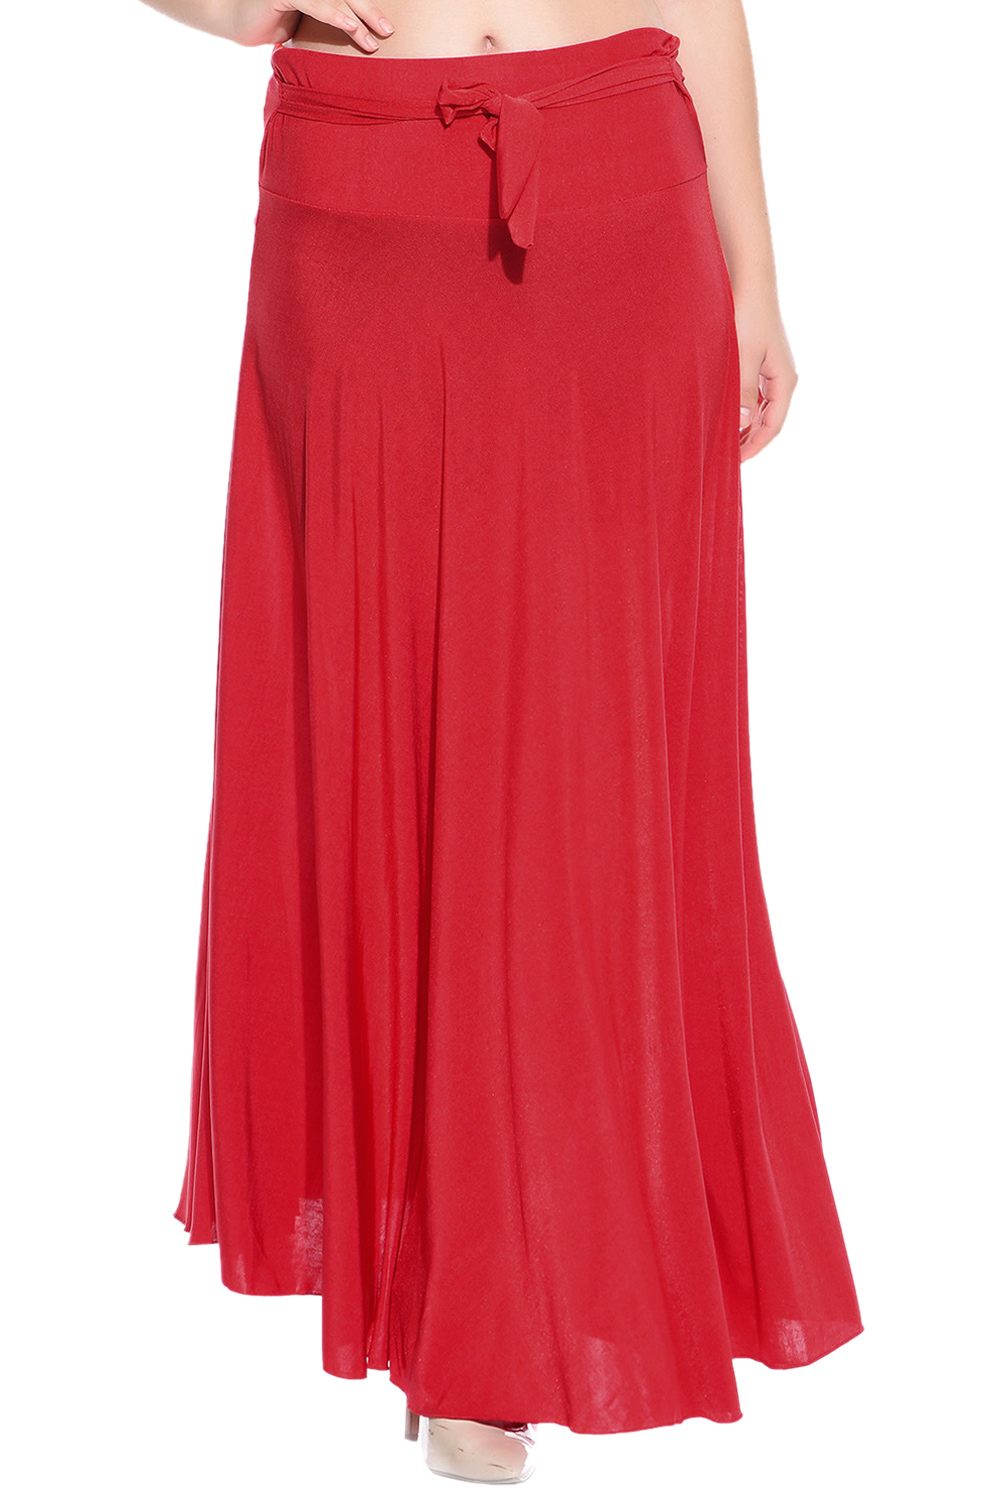 Style Gravity Red Crepe Skirt